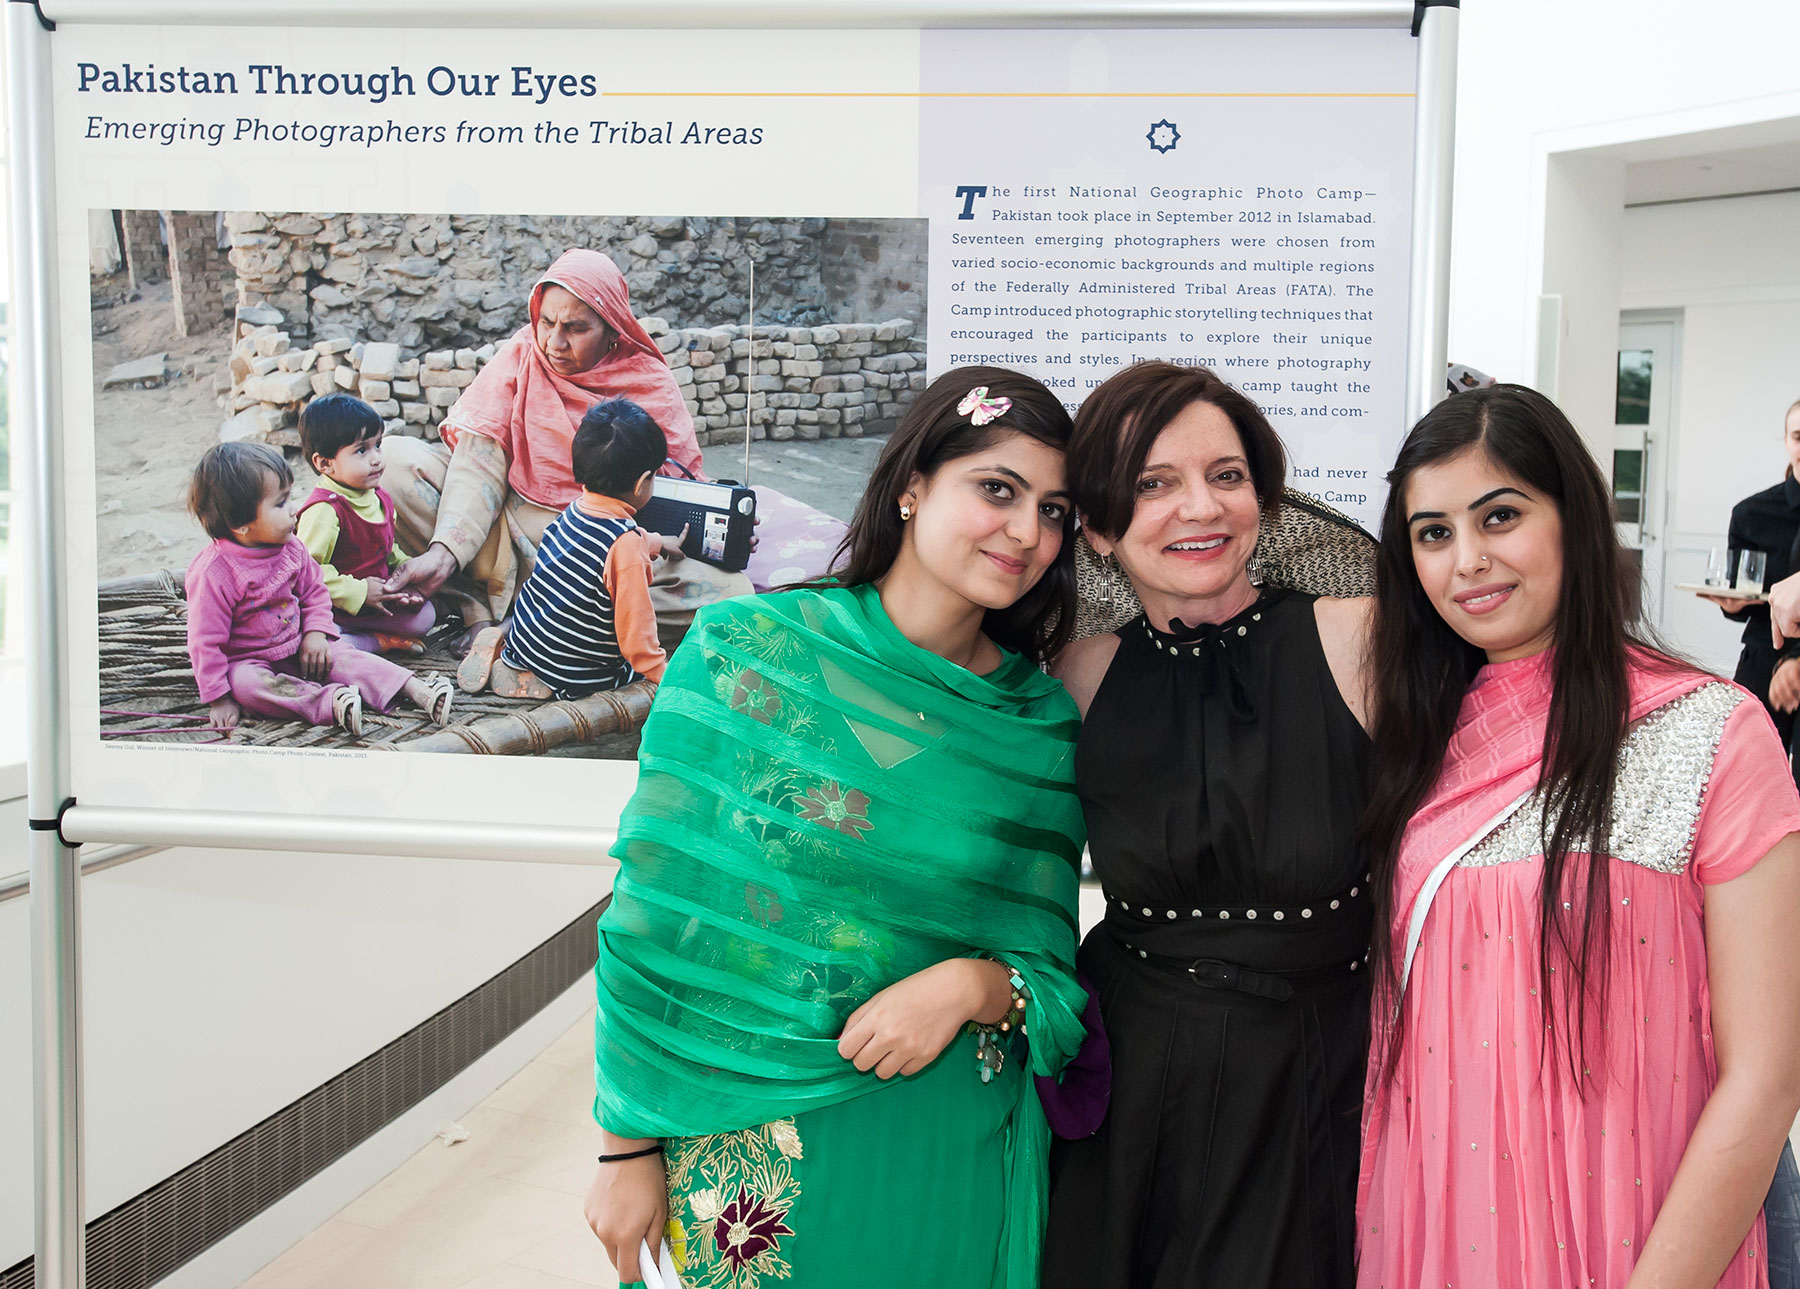 """The exhibition """"Pakistan Through Our Eyes: Emerging Photographers from the Tribal Areas"""" was presented on June 12, 2013 at the United States Institute of Peace in Washington, D.C. The exhibition highlighted the work of 17 emerging photographers from the Federally Administered Tribal Areas (FATA) of Pakistan who participated in two National Geographic Photo Camps. National Geographic Photo Camp Pakistan is a collaboration of USAID, National Geographic and Internews. Curators Without Borders provided exhibition curation and graphic design. Photo: imijphoto.com"""